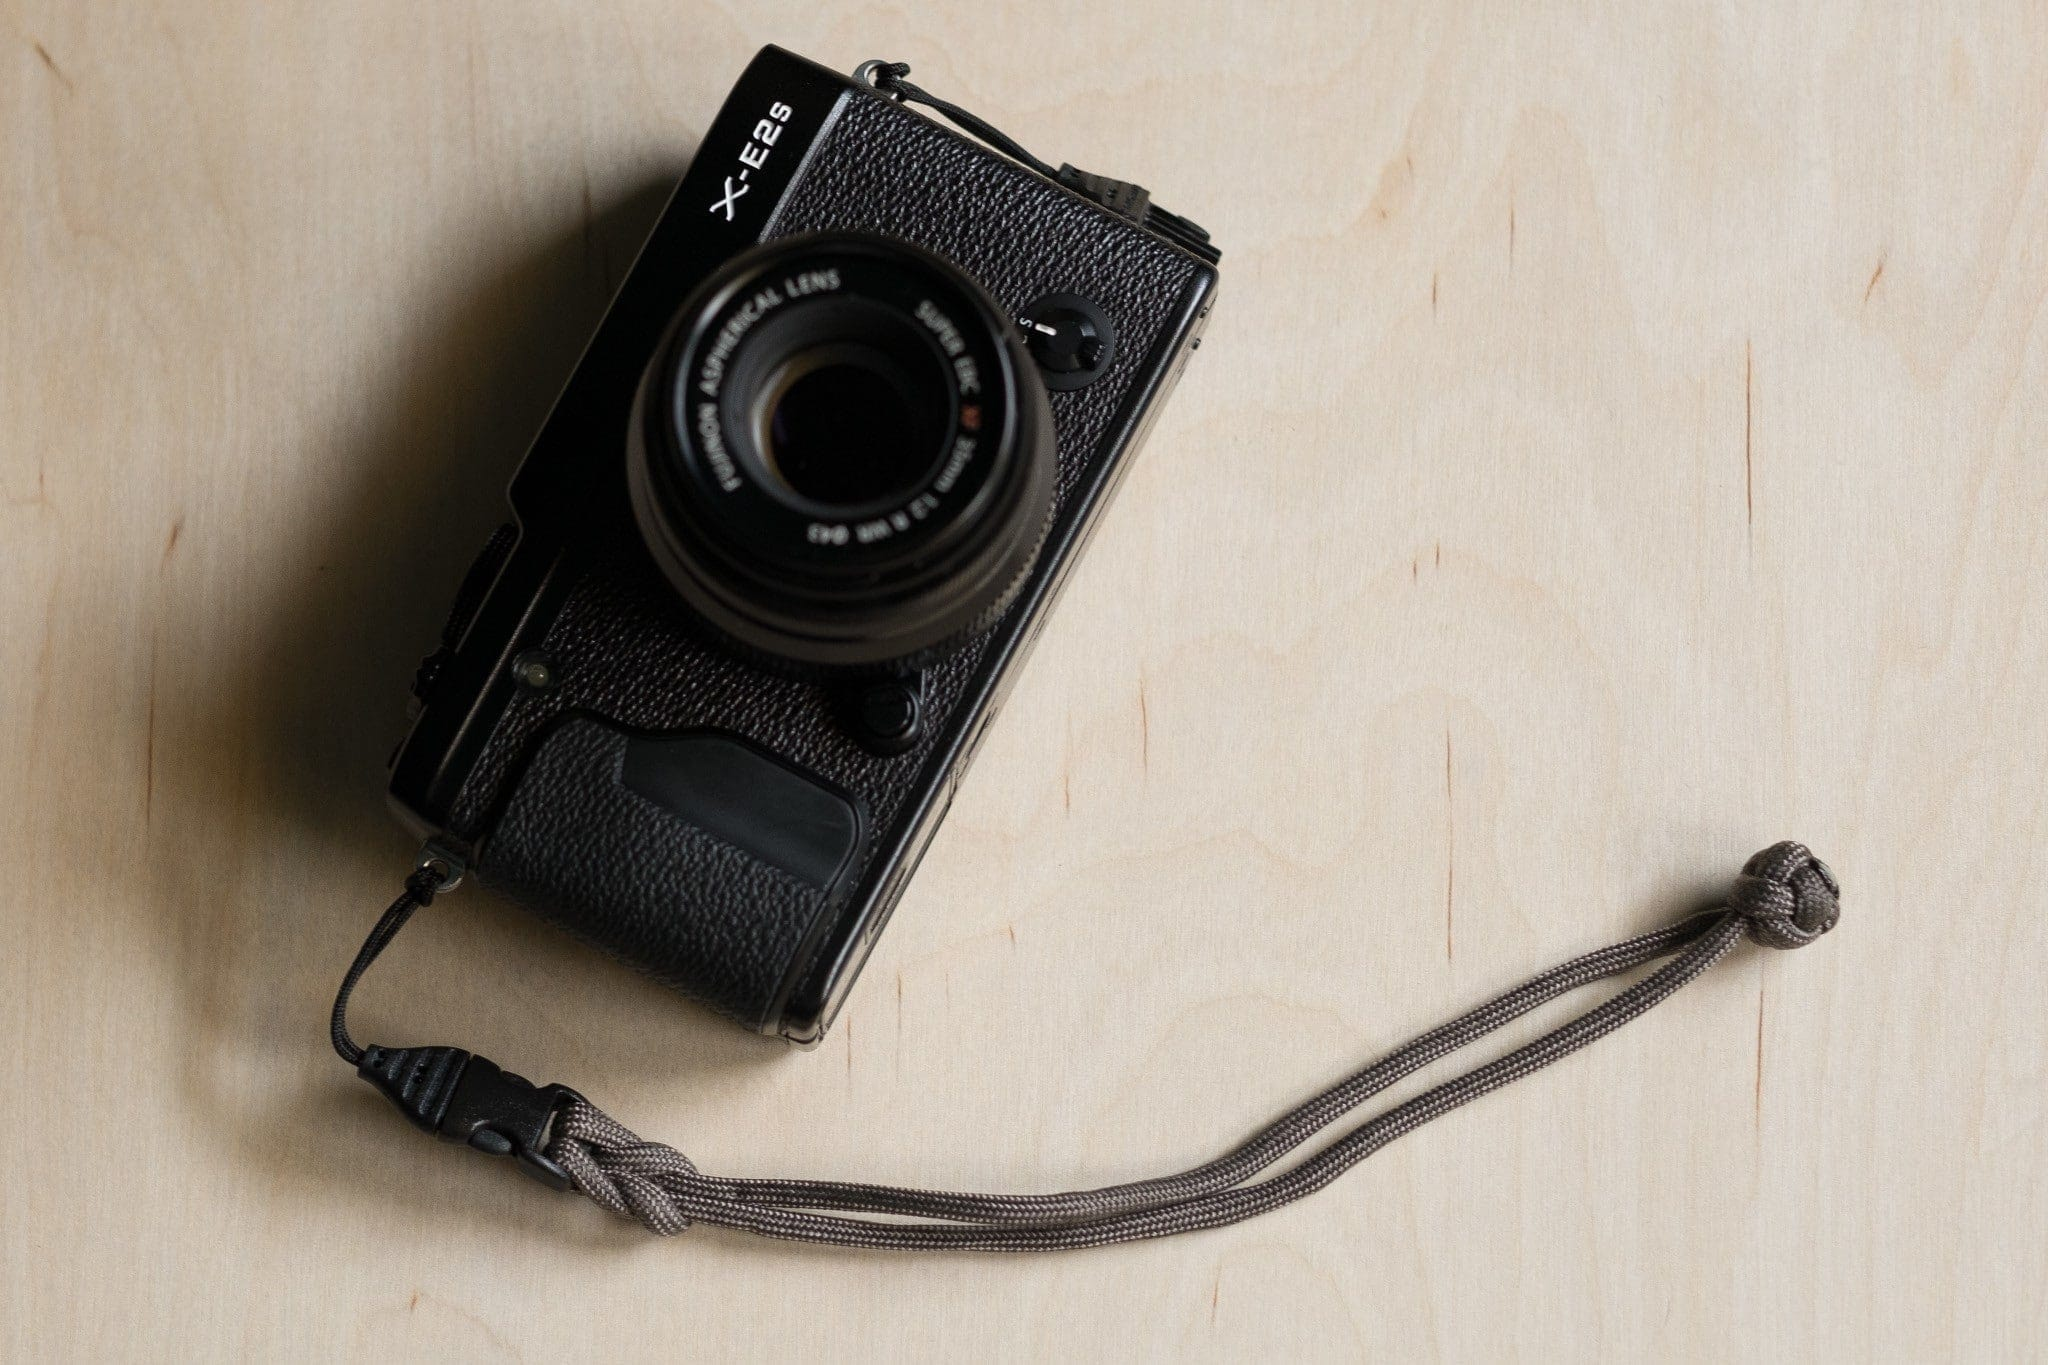 DIY Paracord Camera Wrist Strap attached to Fujifilm X-E2s